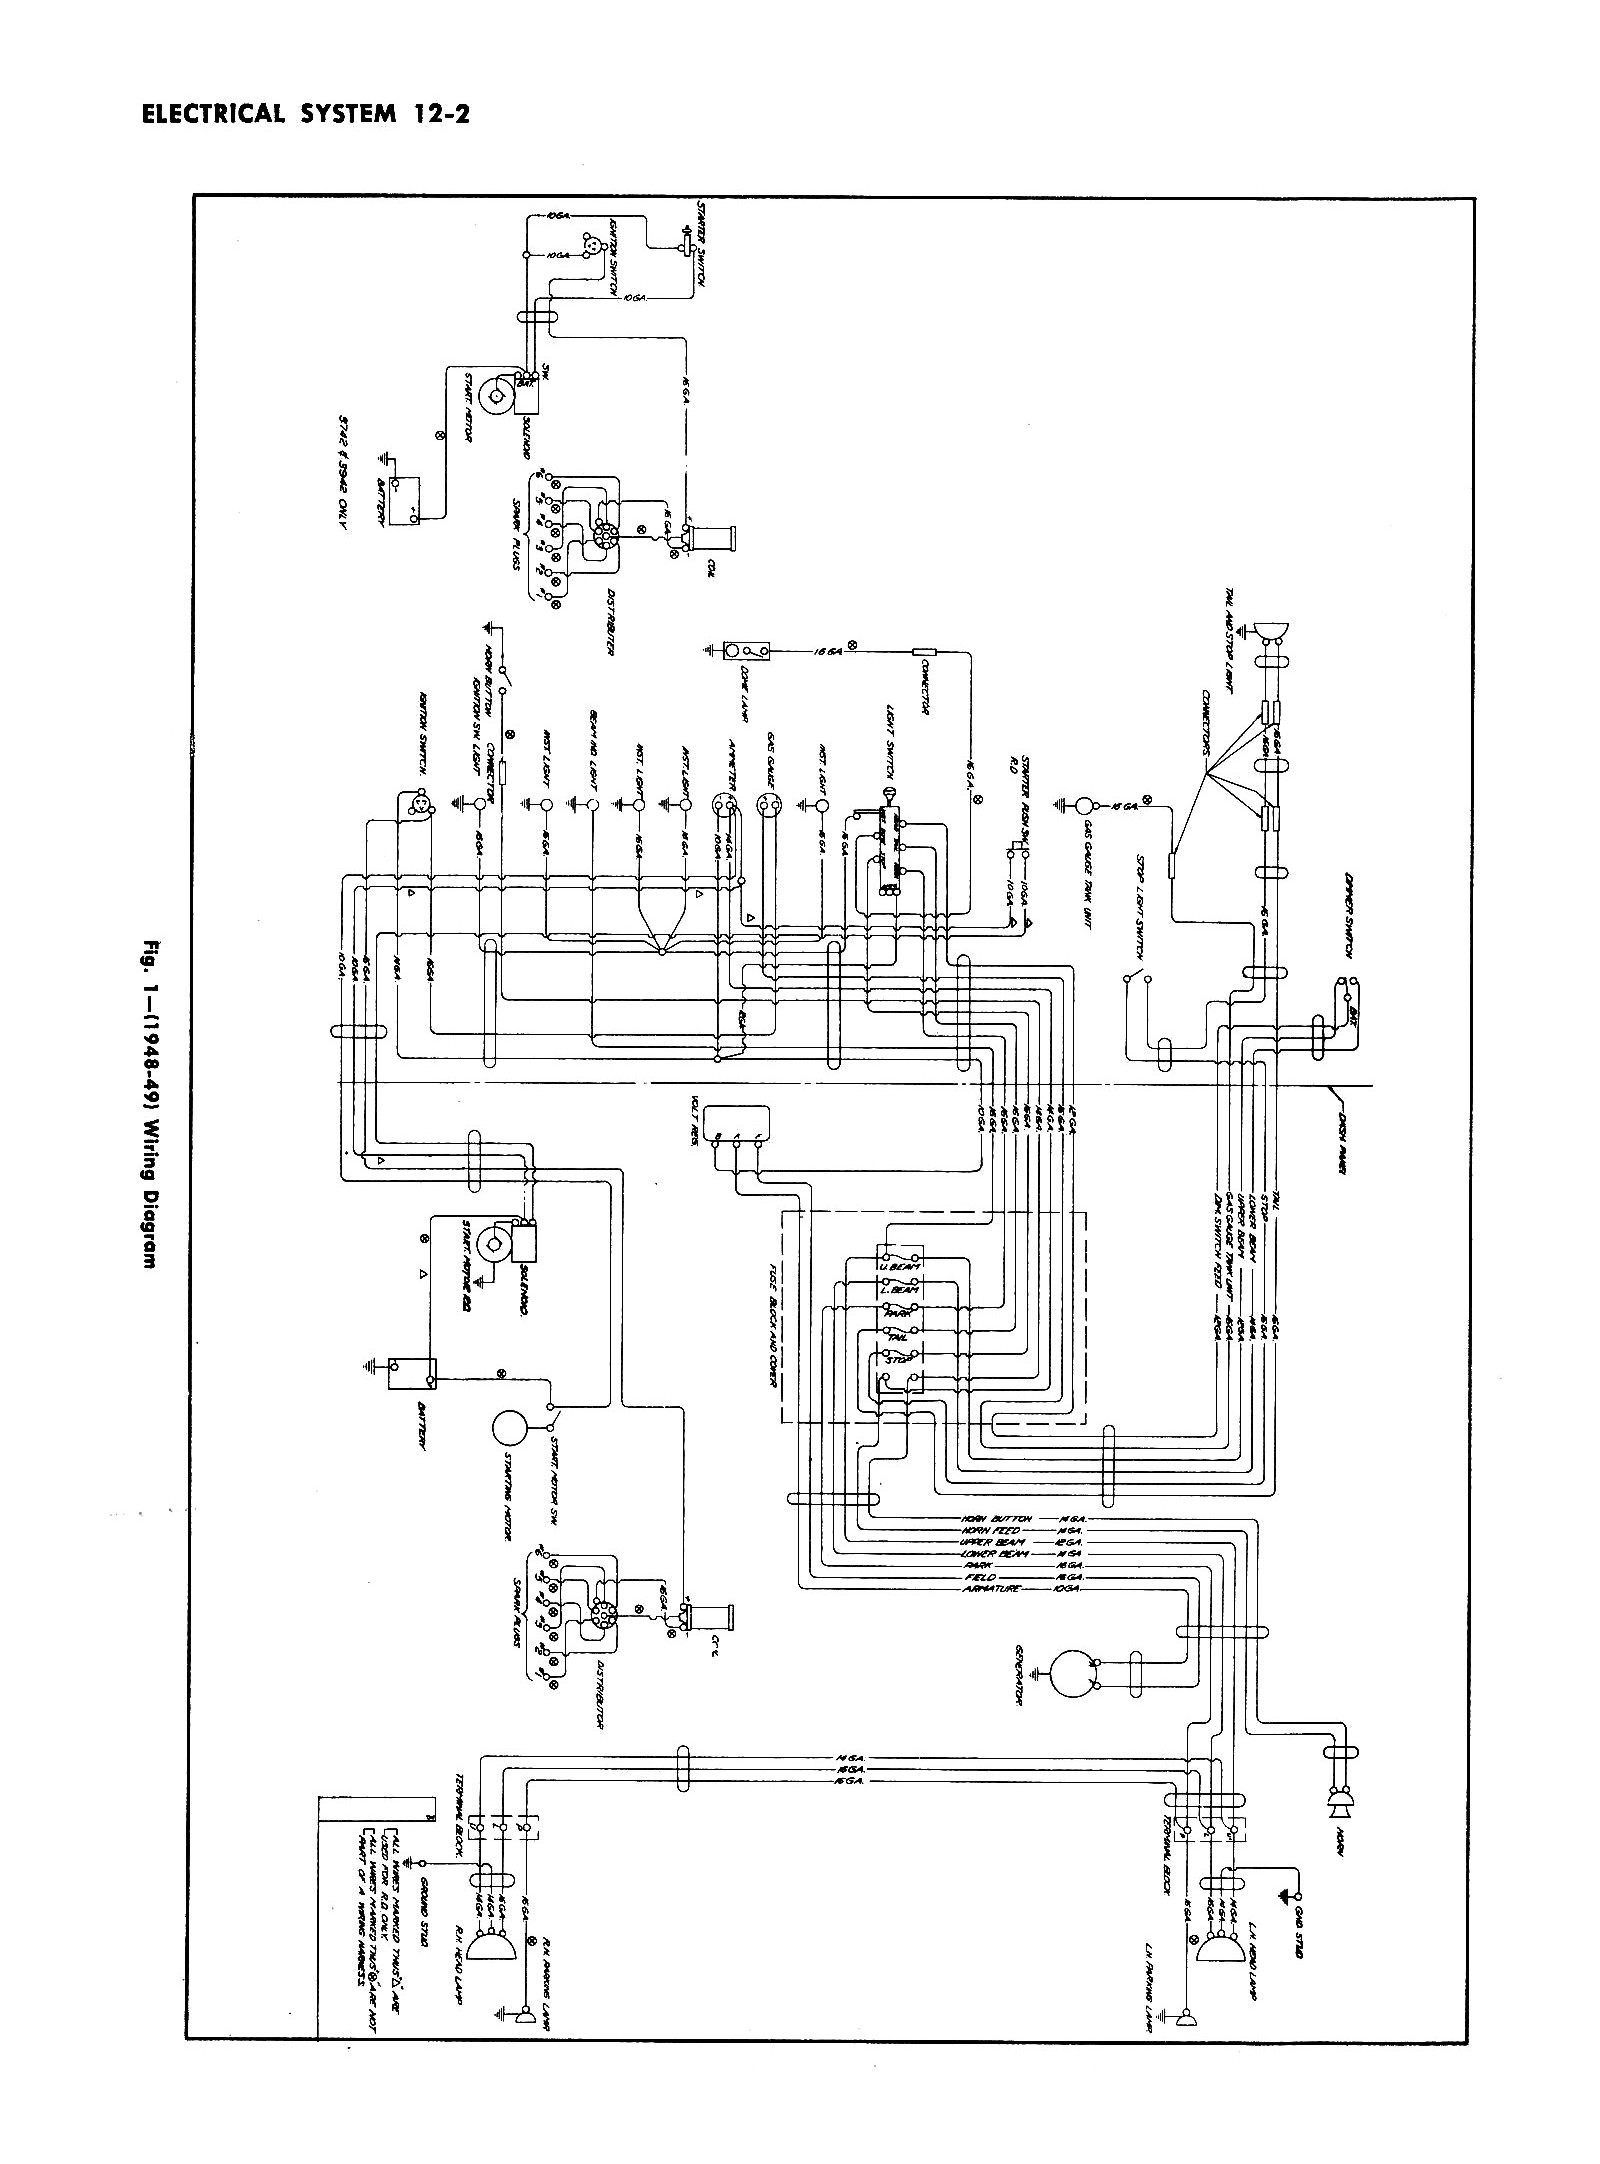 55 chevy truck wiring diagram | manual e books – chevy steering column  wiring diagram